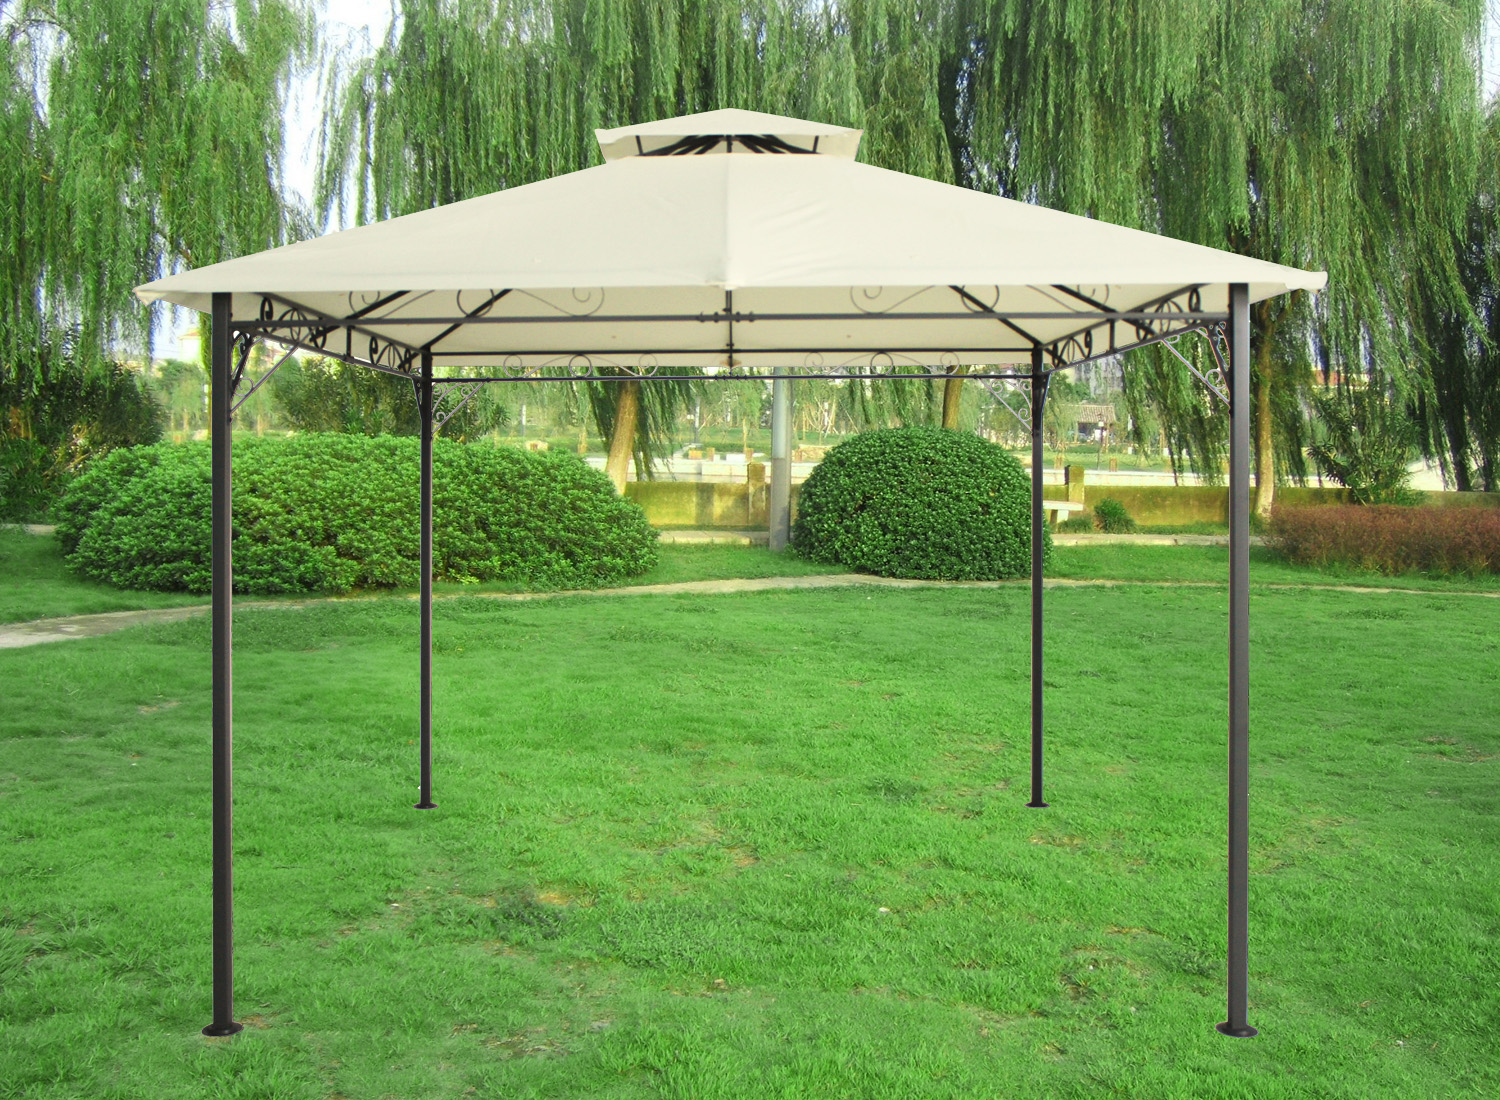 3x3m pavilion gazebo awning canopy sun shade shelter. Black Bedroom Furniture Sets. Home Design Ideas